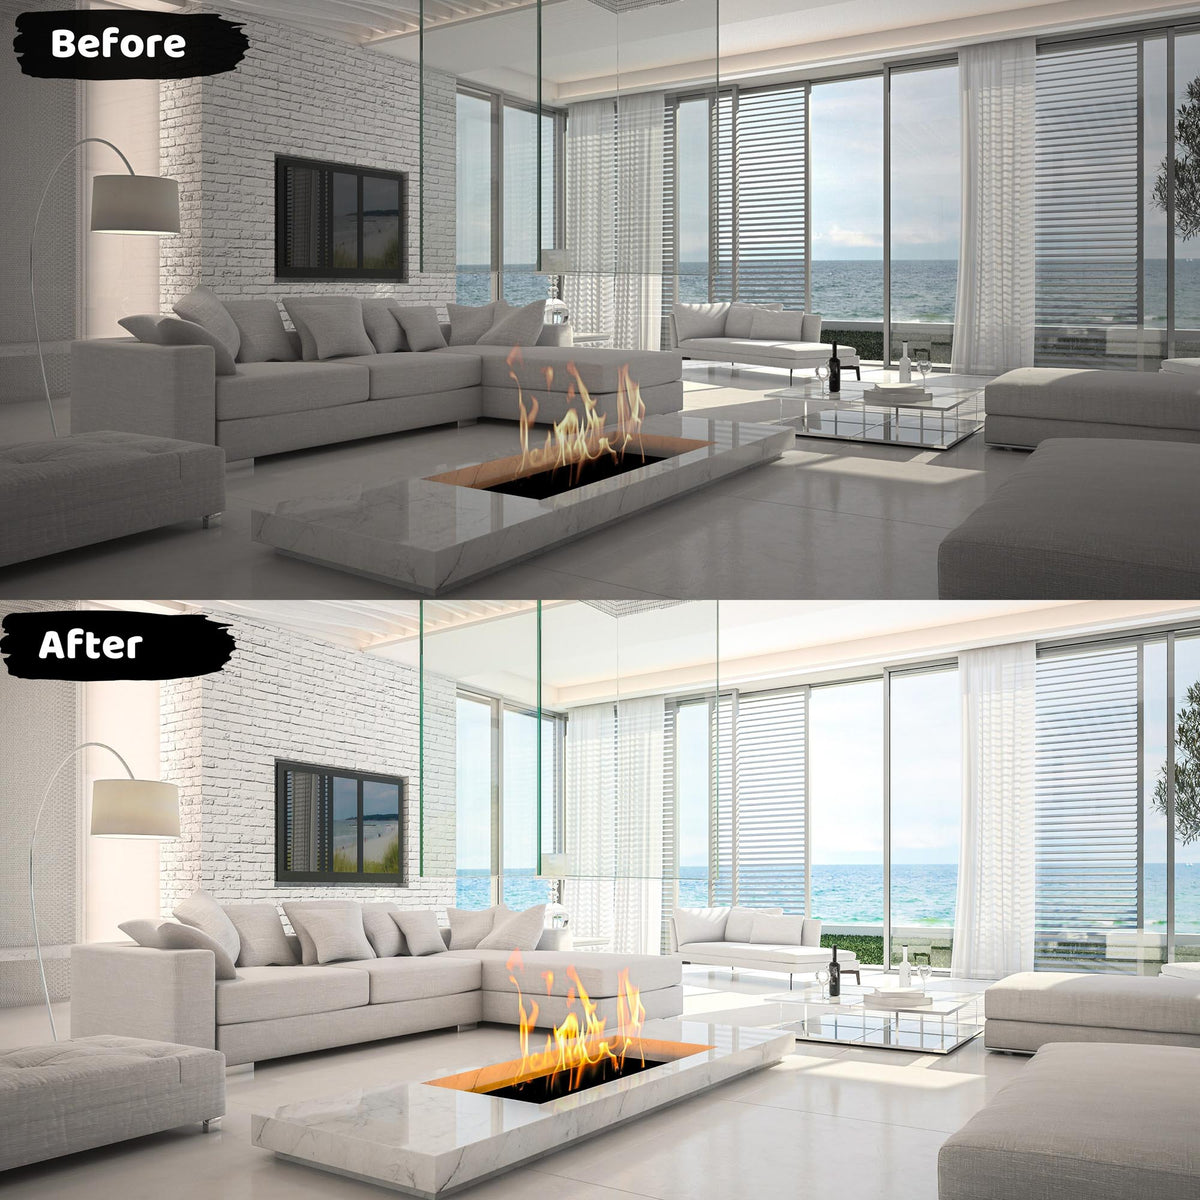 Real Estate Lightroom Presets Home Interiors